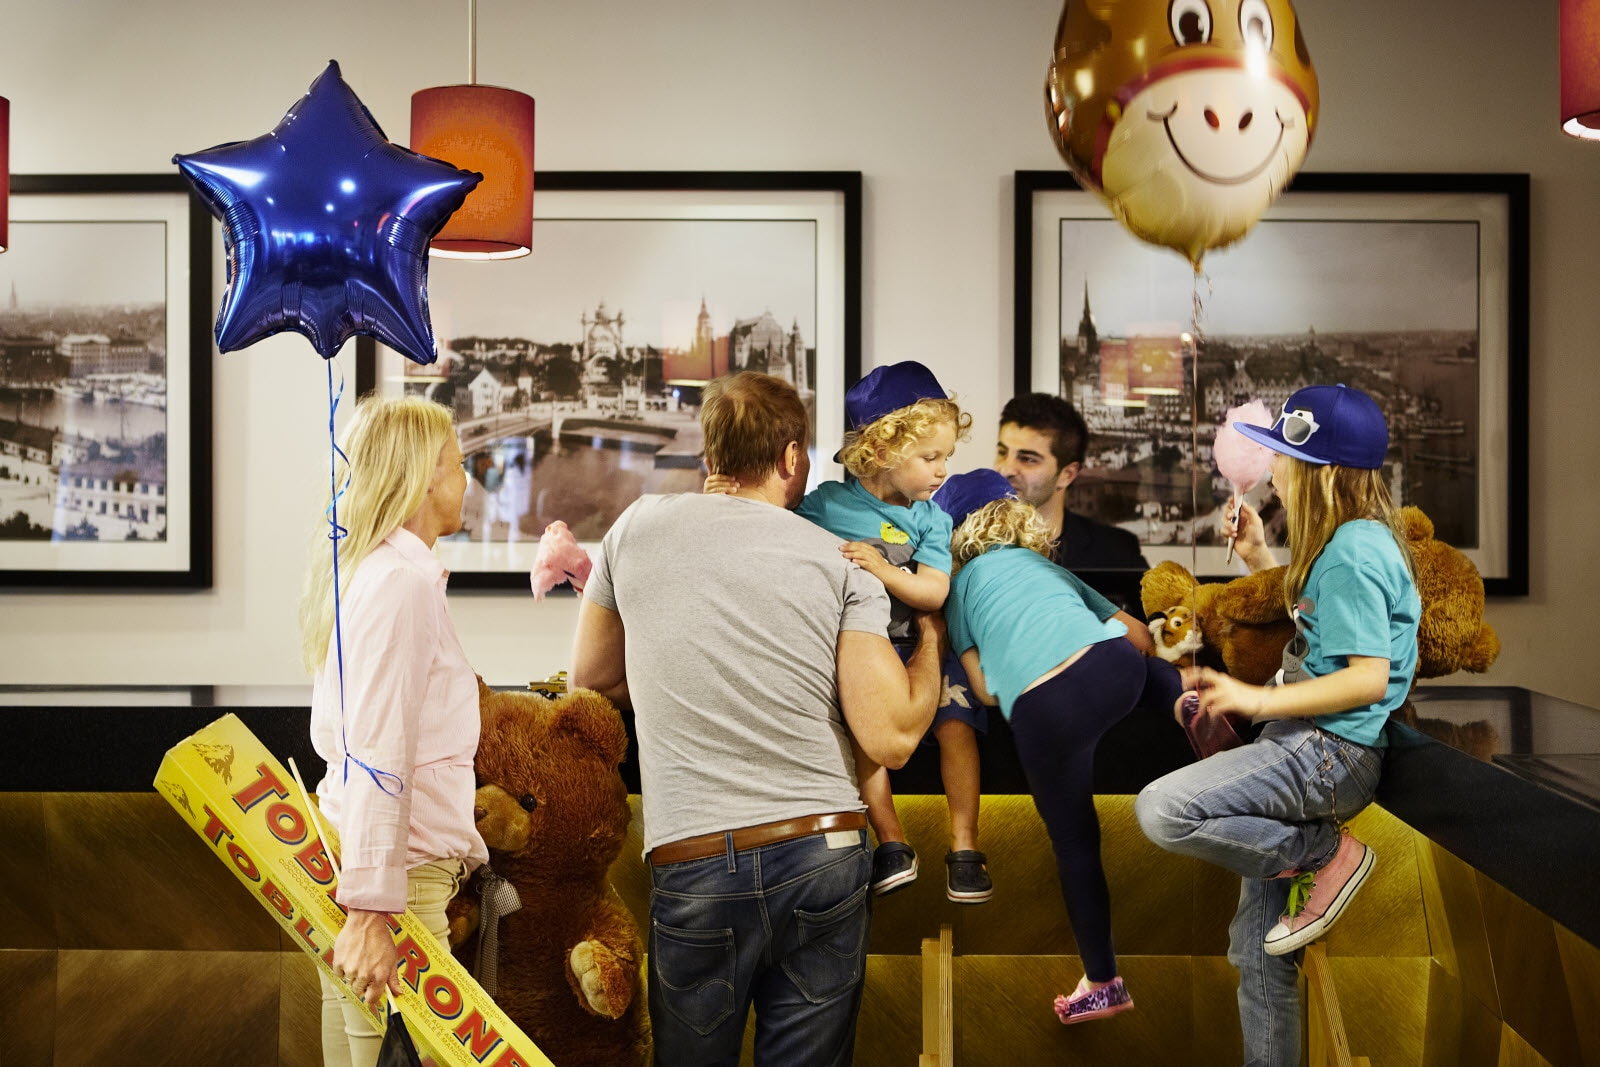 ccc-family-leisure-reception-ballons.jpg